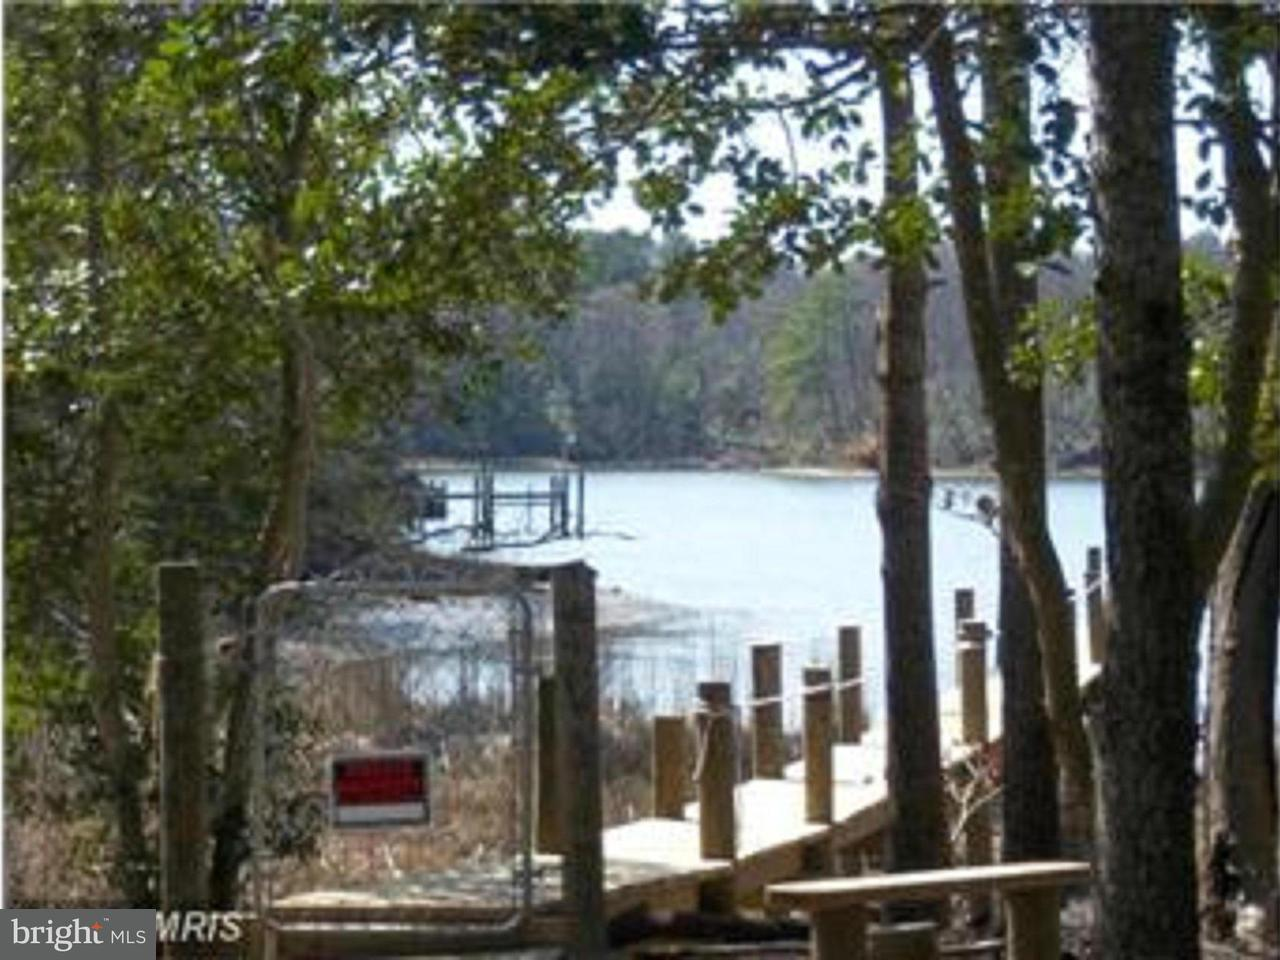 Land for Sale at 48730 Smith Rd St. Inigoes, Maryland 20684 United States